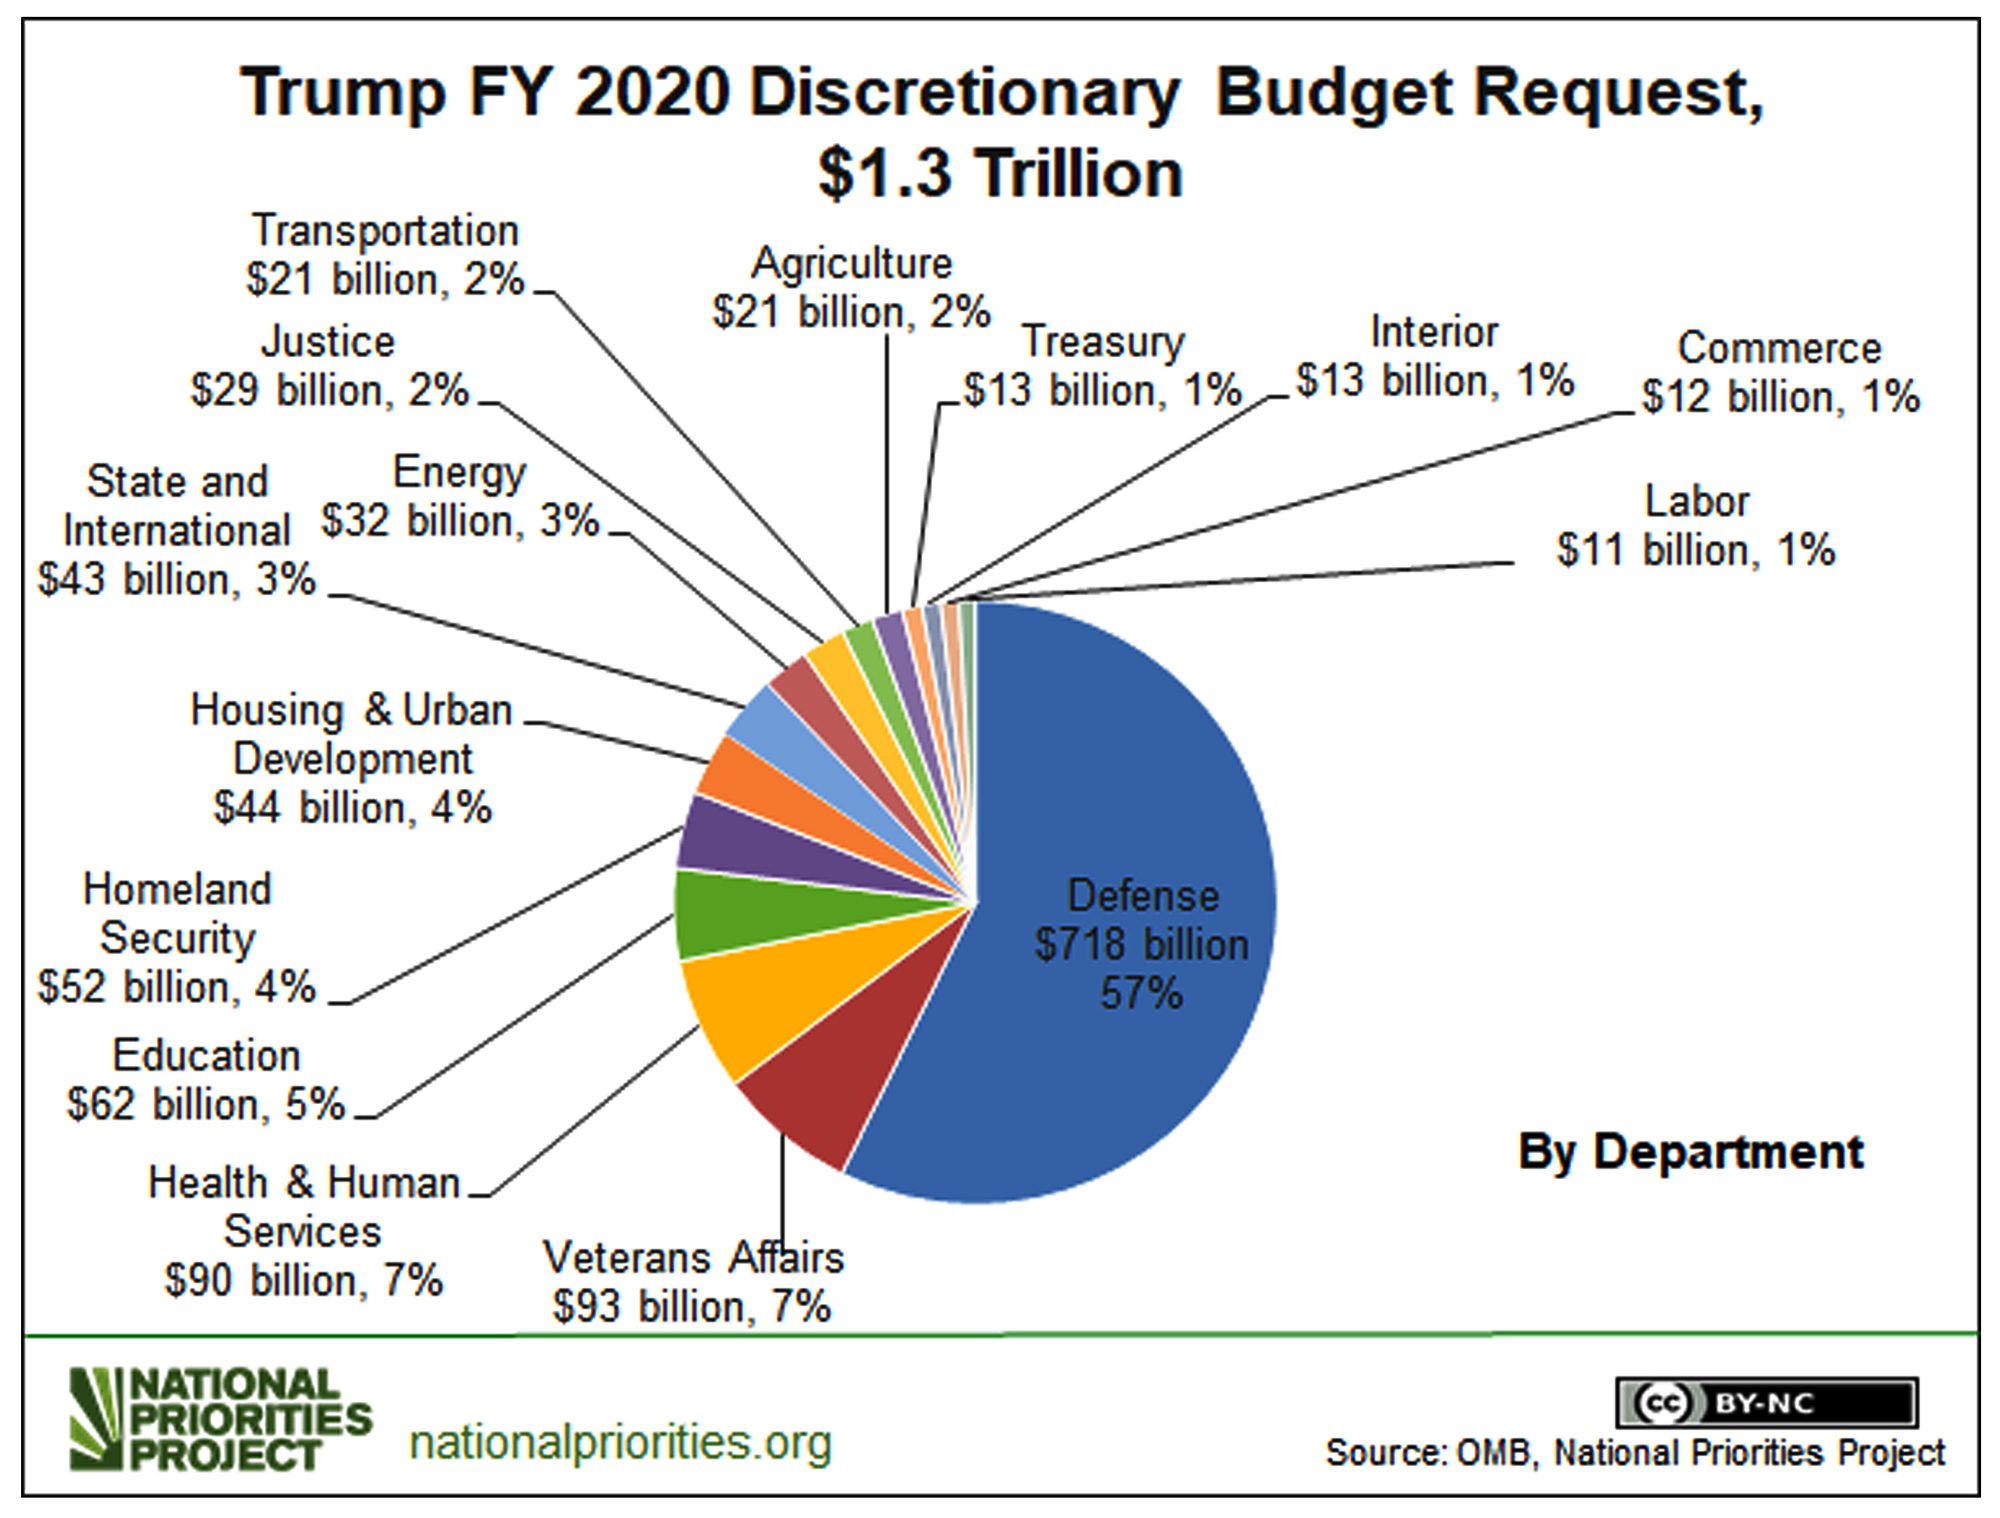 2020 Discretionary Budget Pie copy